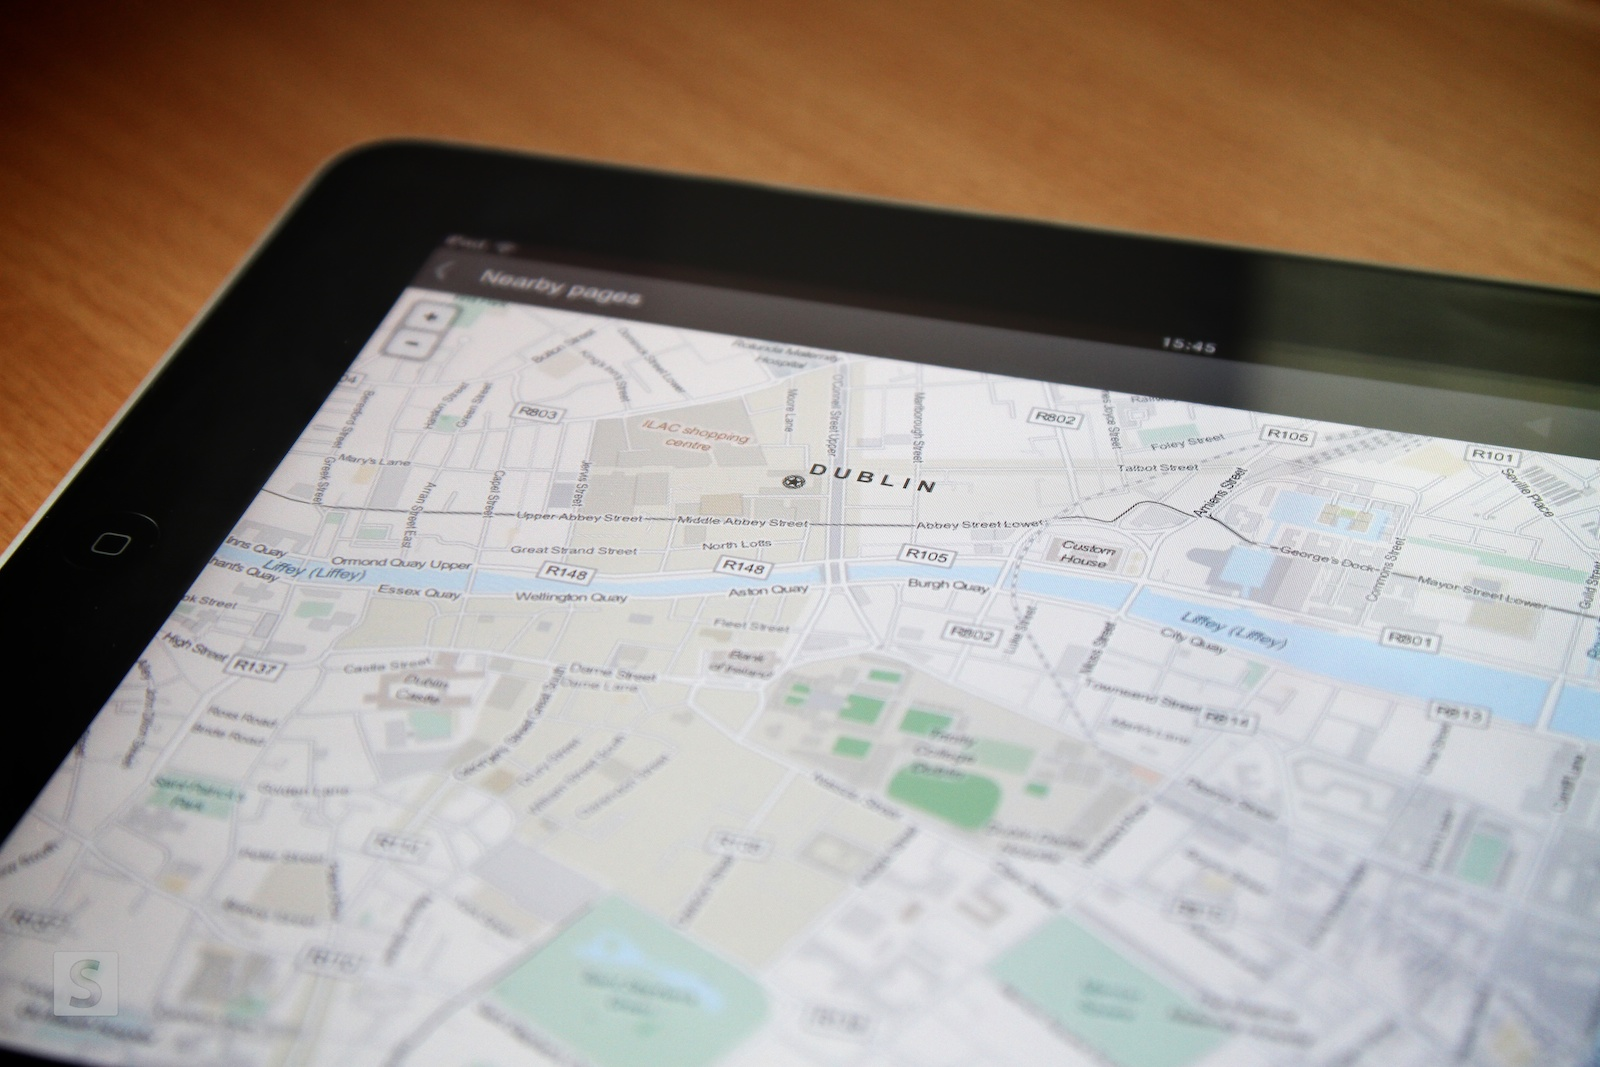 Wikipedia OpenStreetMap example on iPad